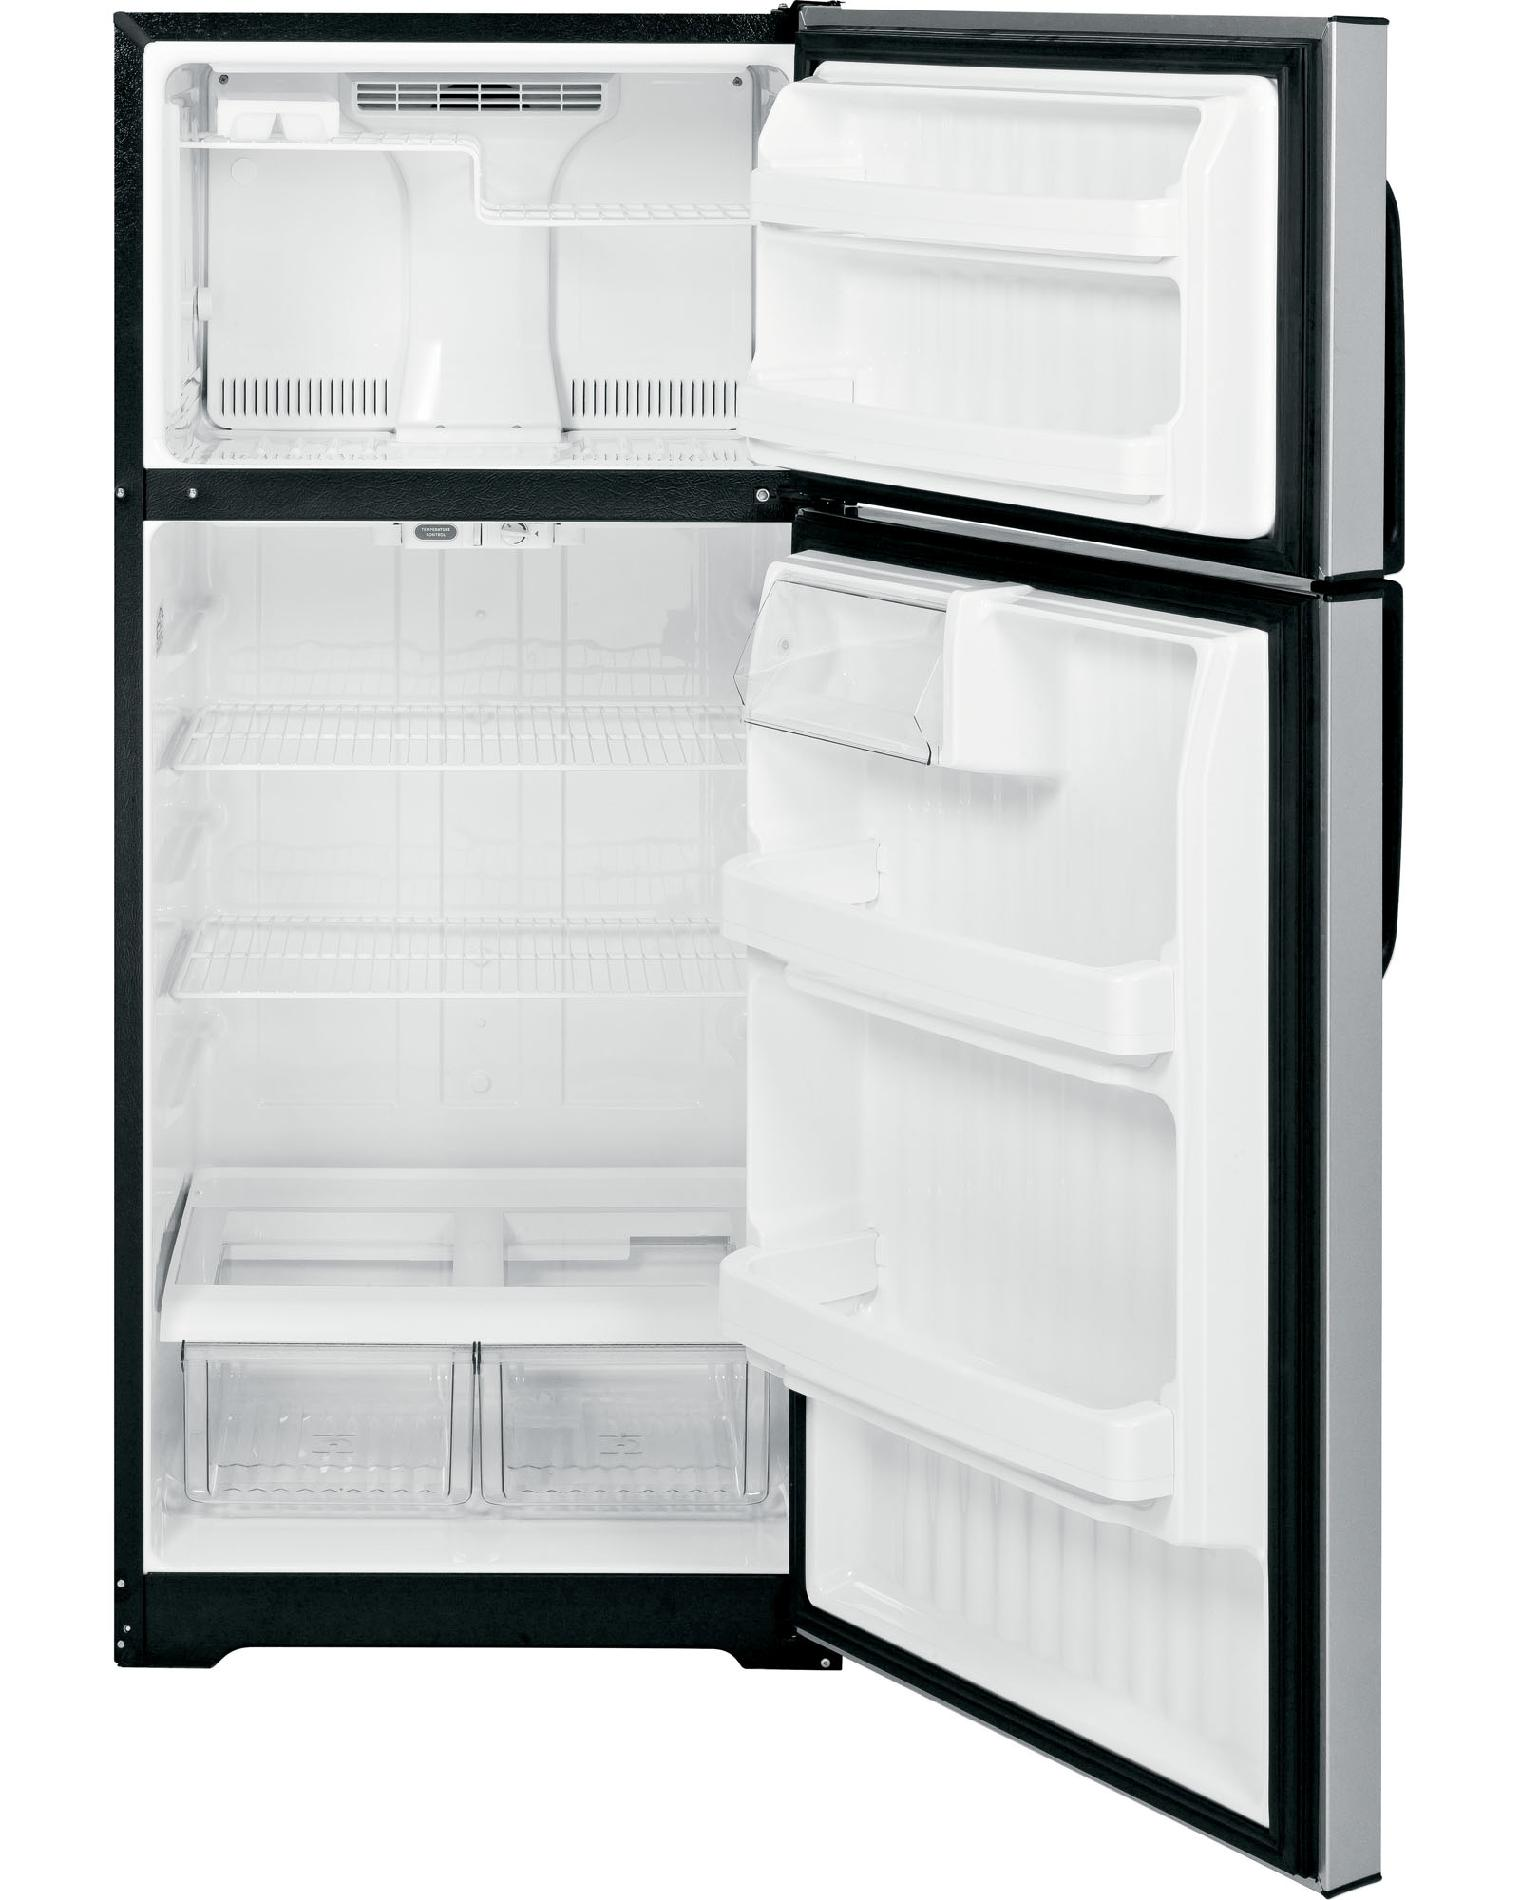 GE 16.6 cu. ft. Top-Freezer Refrigerator - Silver Metallic